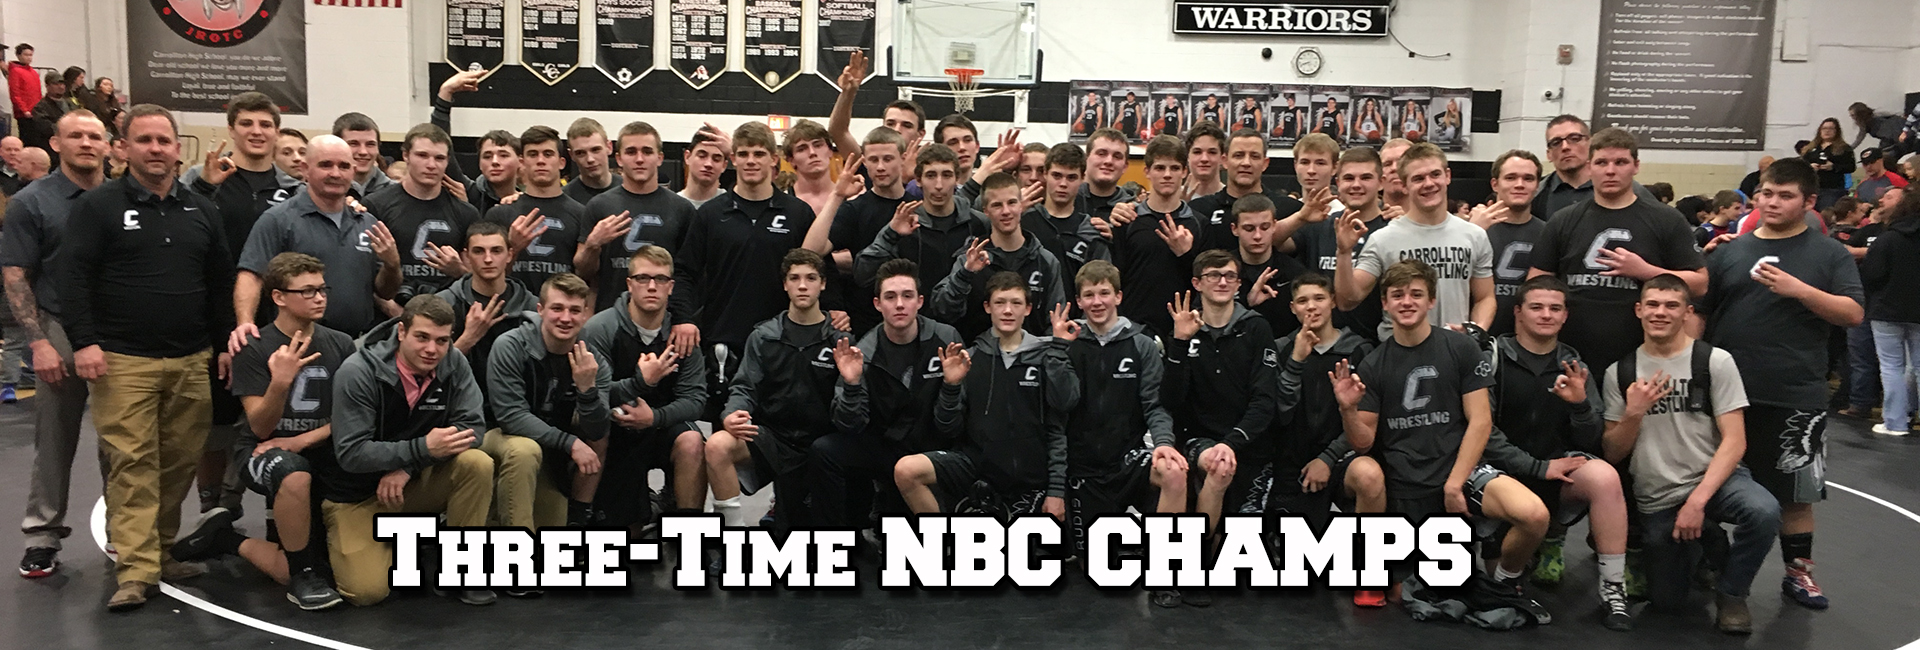 Wrestlers Win Third Straight Title!